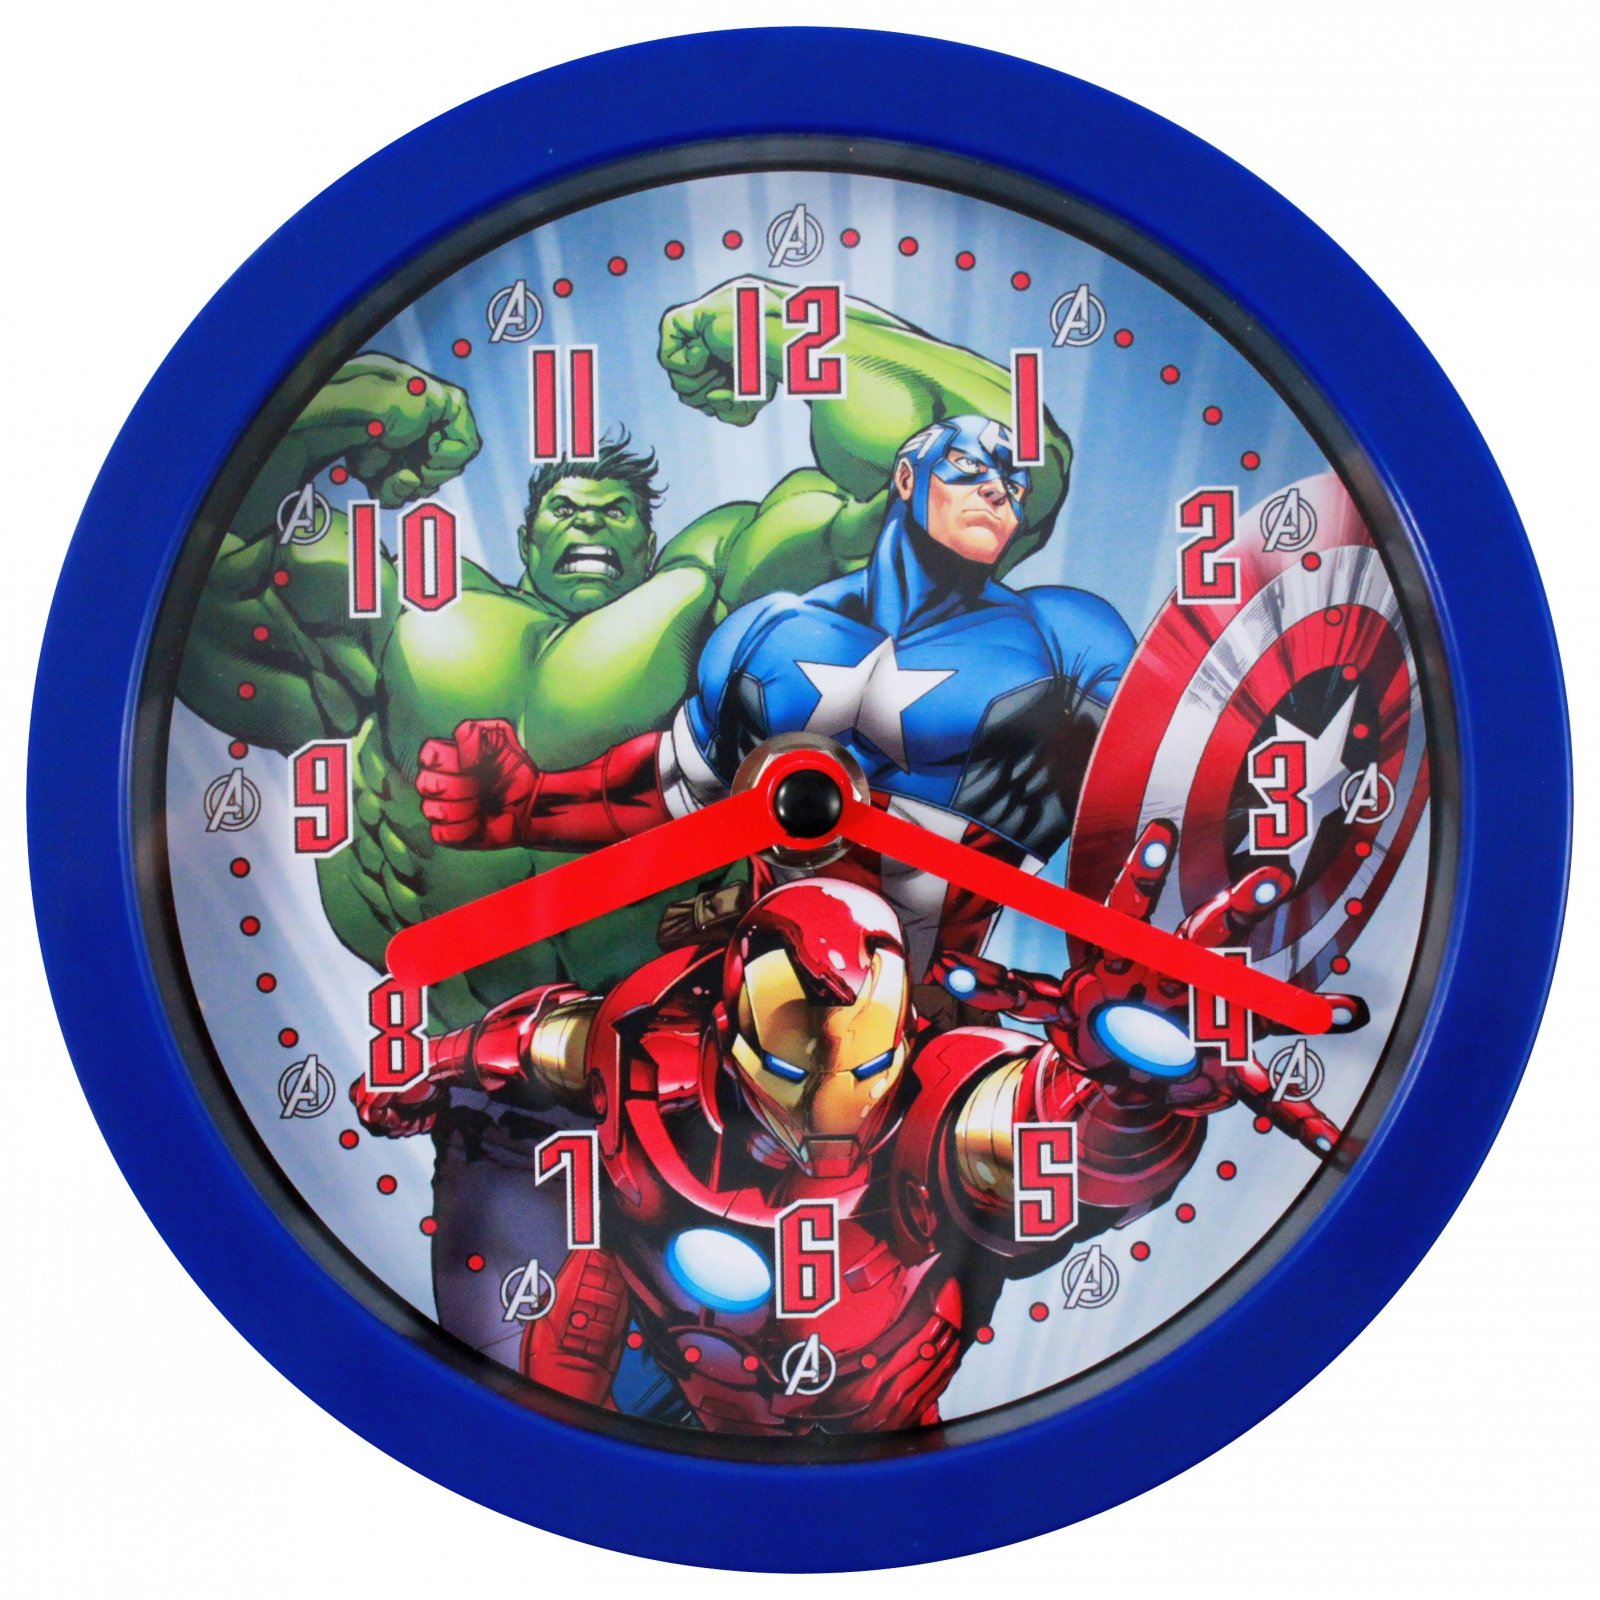 Marvel officially licensed dual function analog clock marvel avengers dual function tabletop desk or hanging wall analog clock kids themed bedroom decor amipublicfo Images